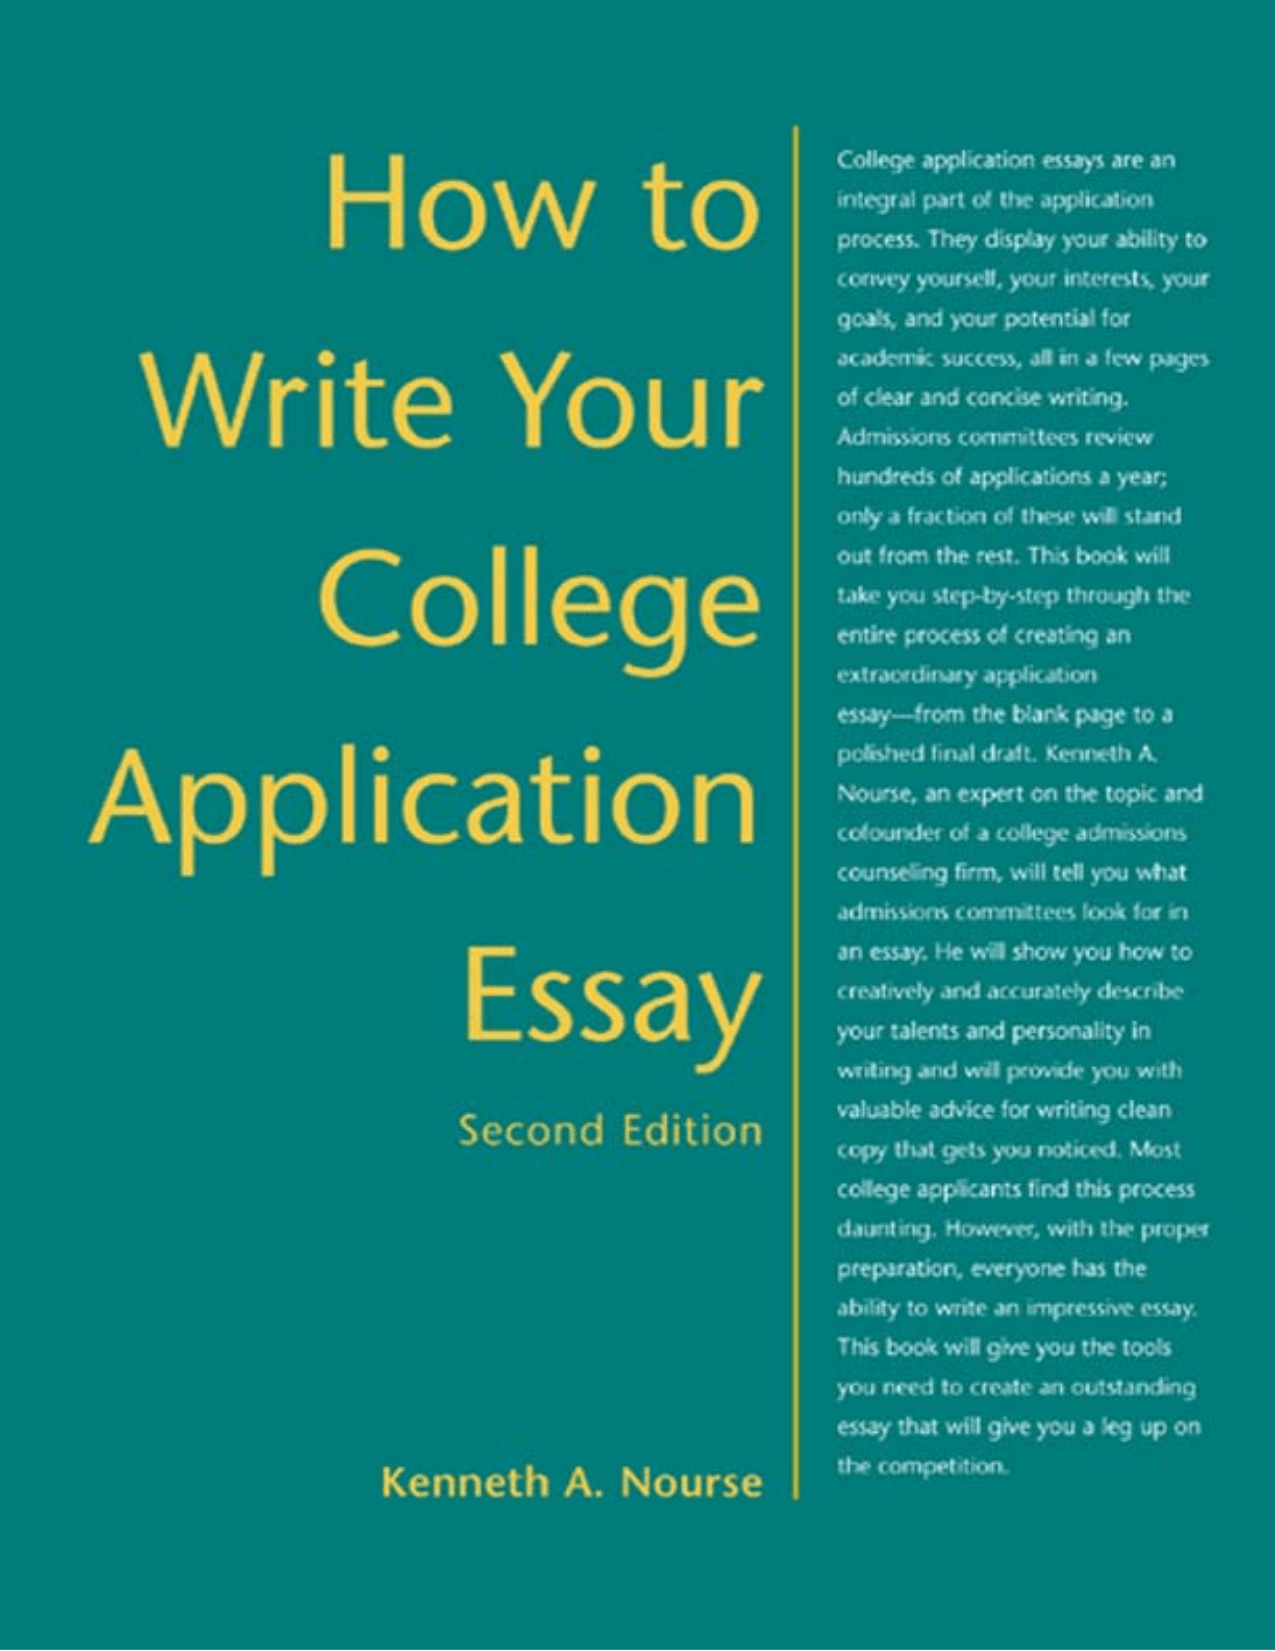 application college essay winning write I believe this belongs to you lyrics winning college essay examples hollistic nursing essays nursing application essays.